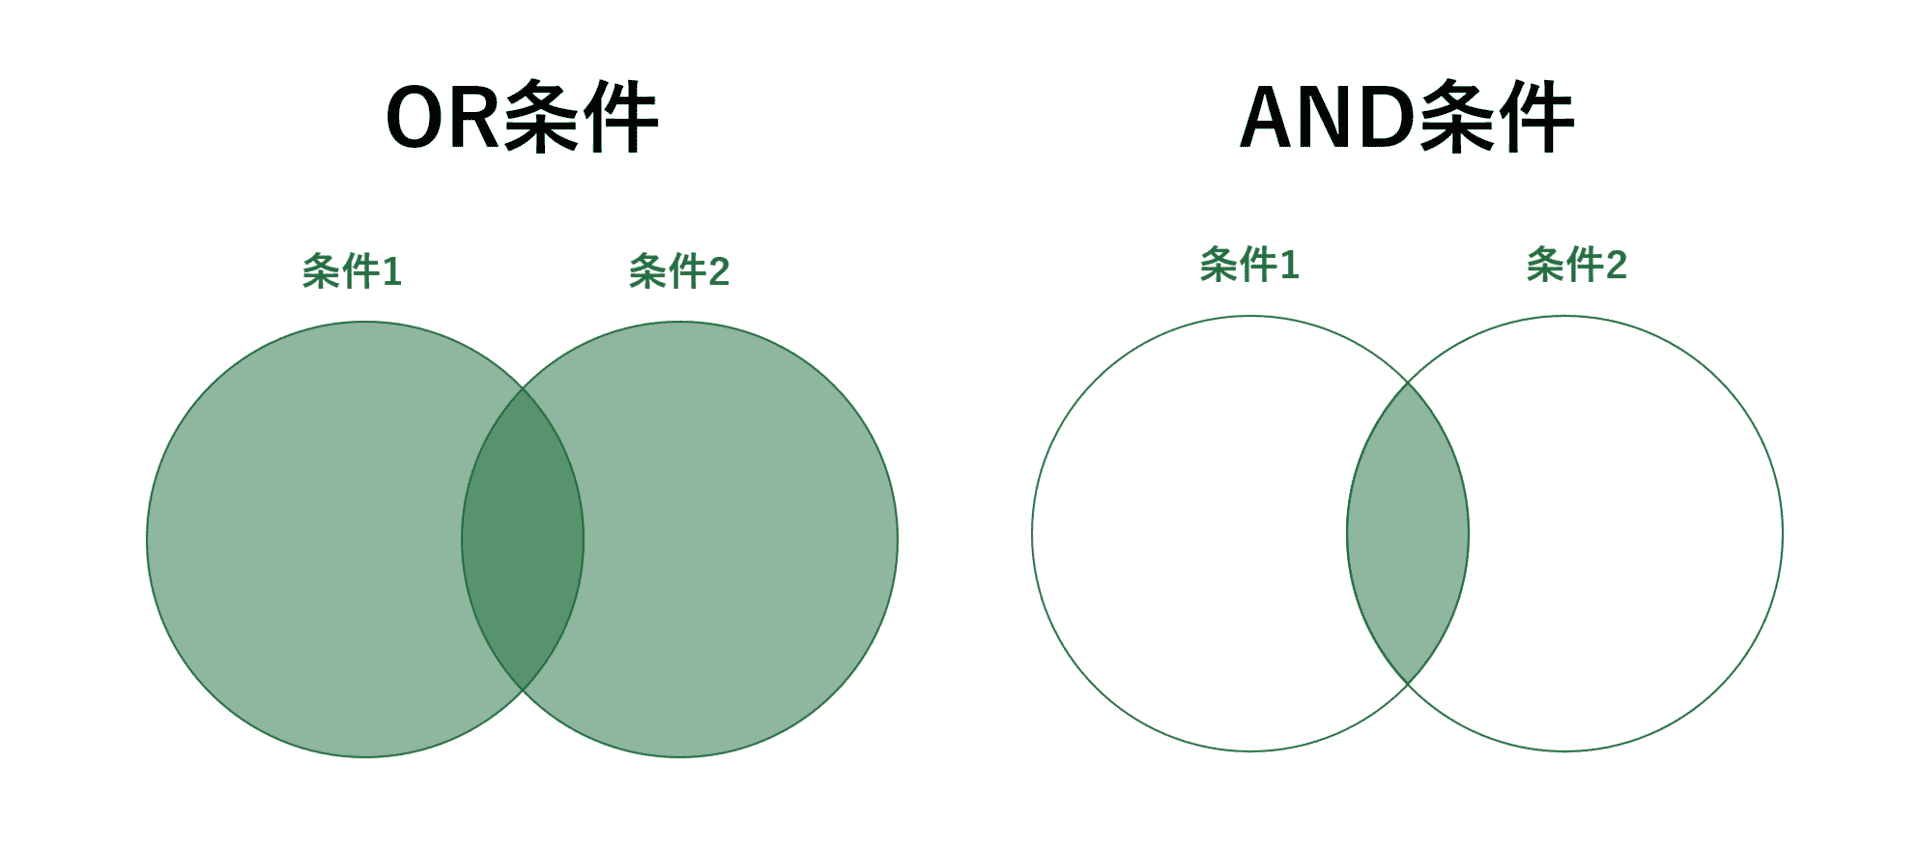 OR条件とAND条件の違い